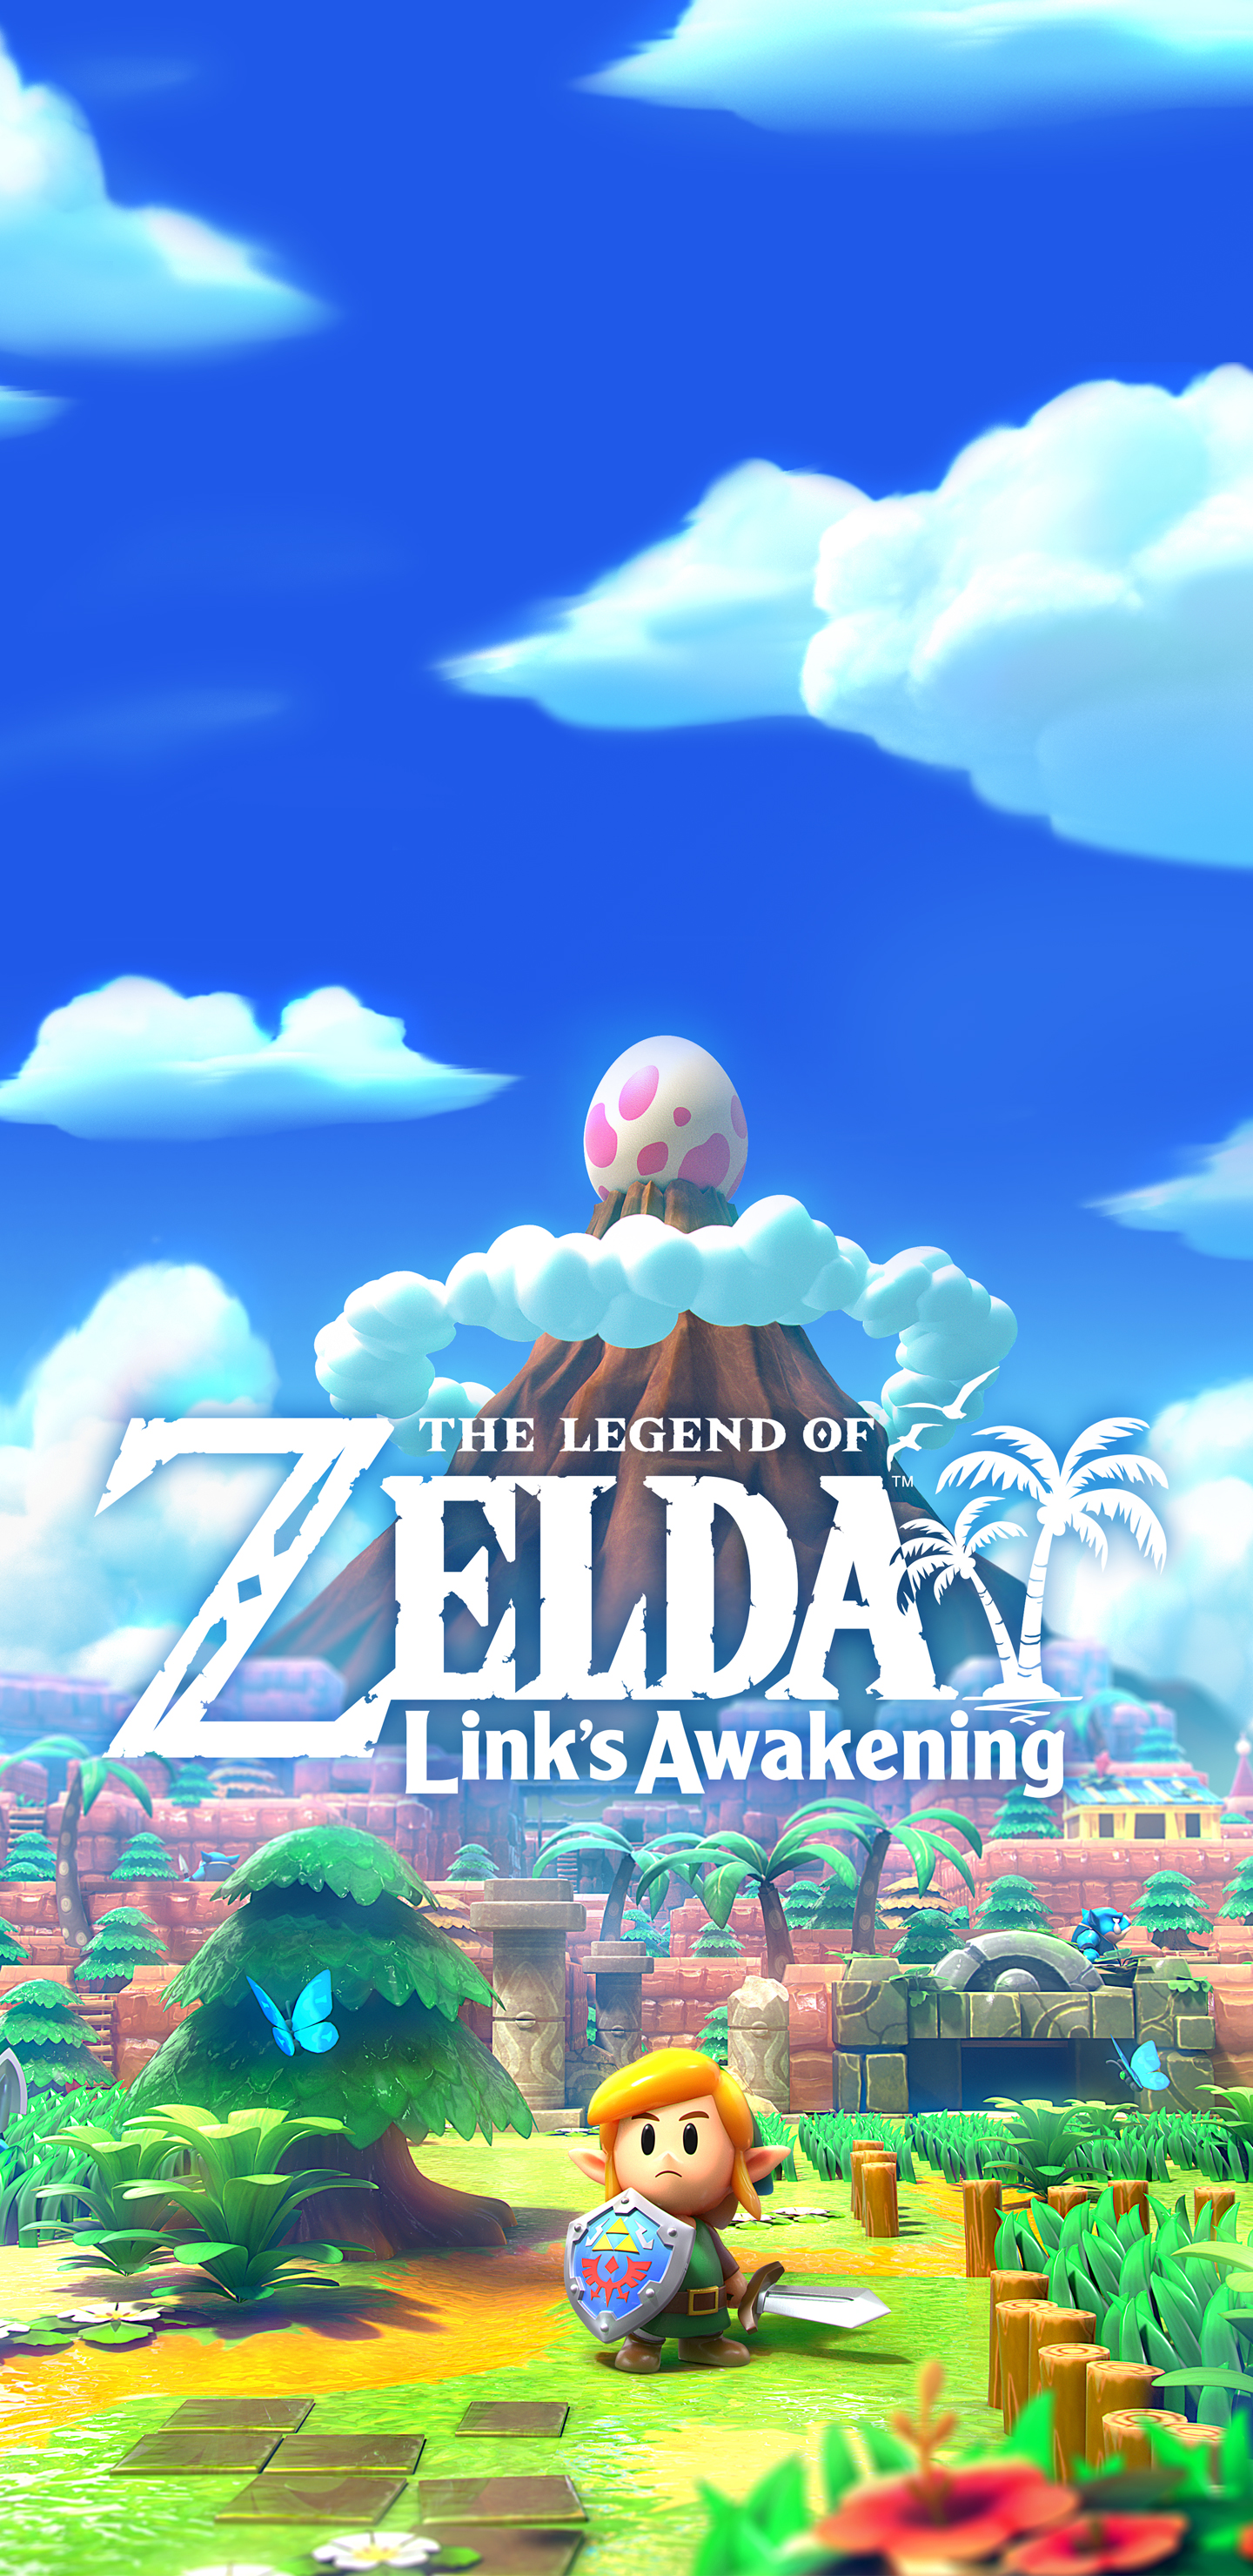 The Legend Of Zelda Link S Awakening Cover Art Wallpaper Cat